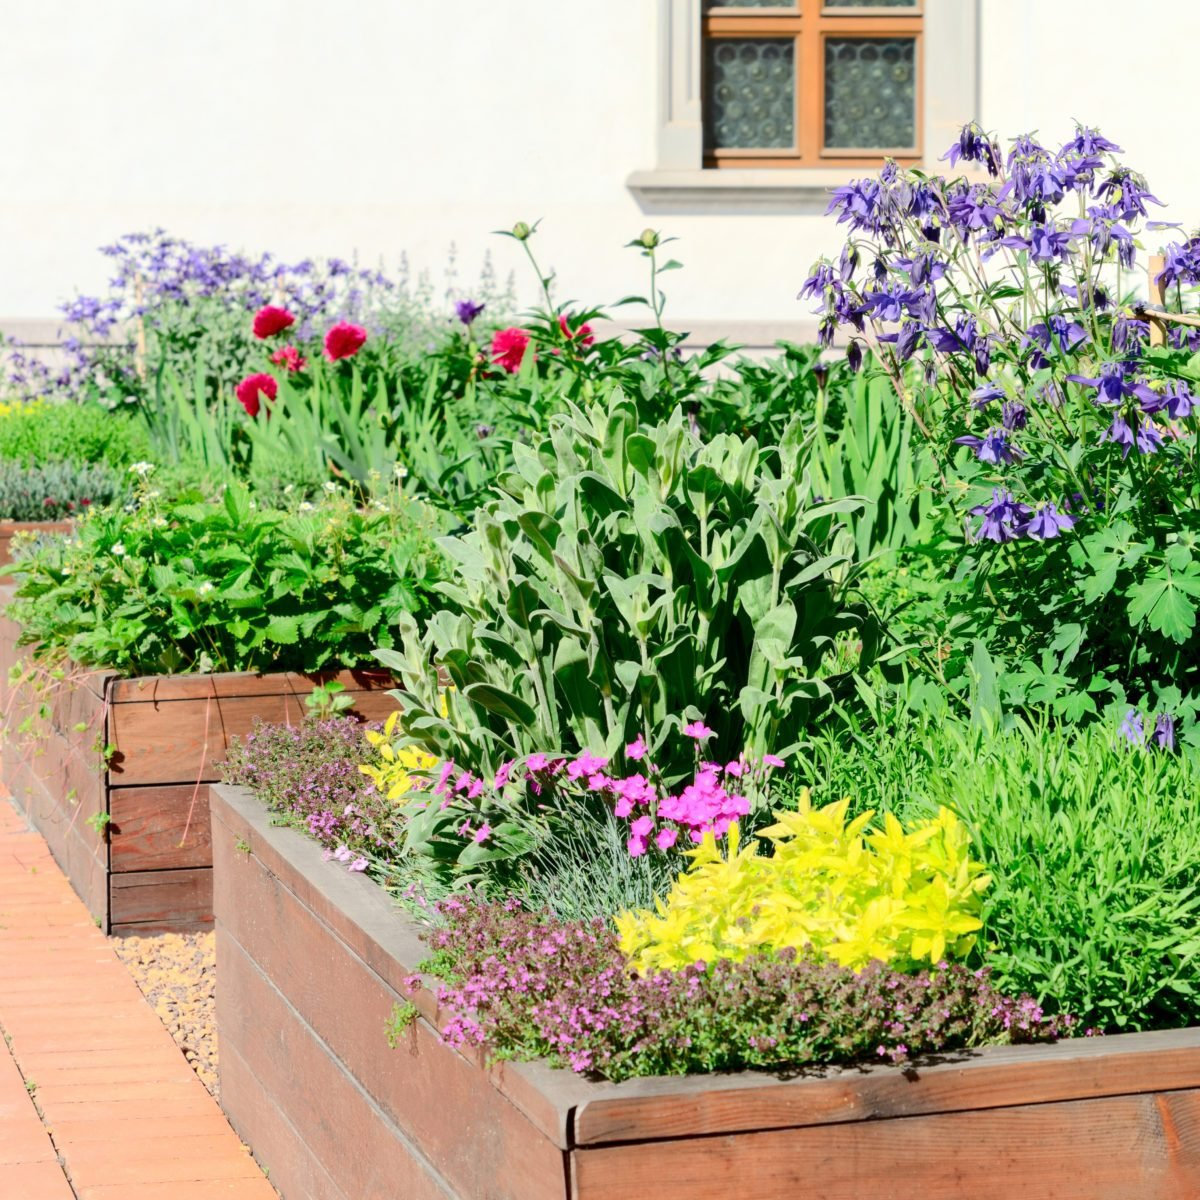 Edible Landscape Design: The Prettiest Edible Landscaping Ideas